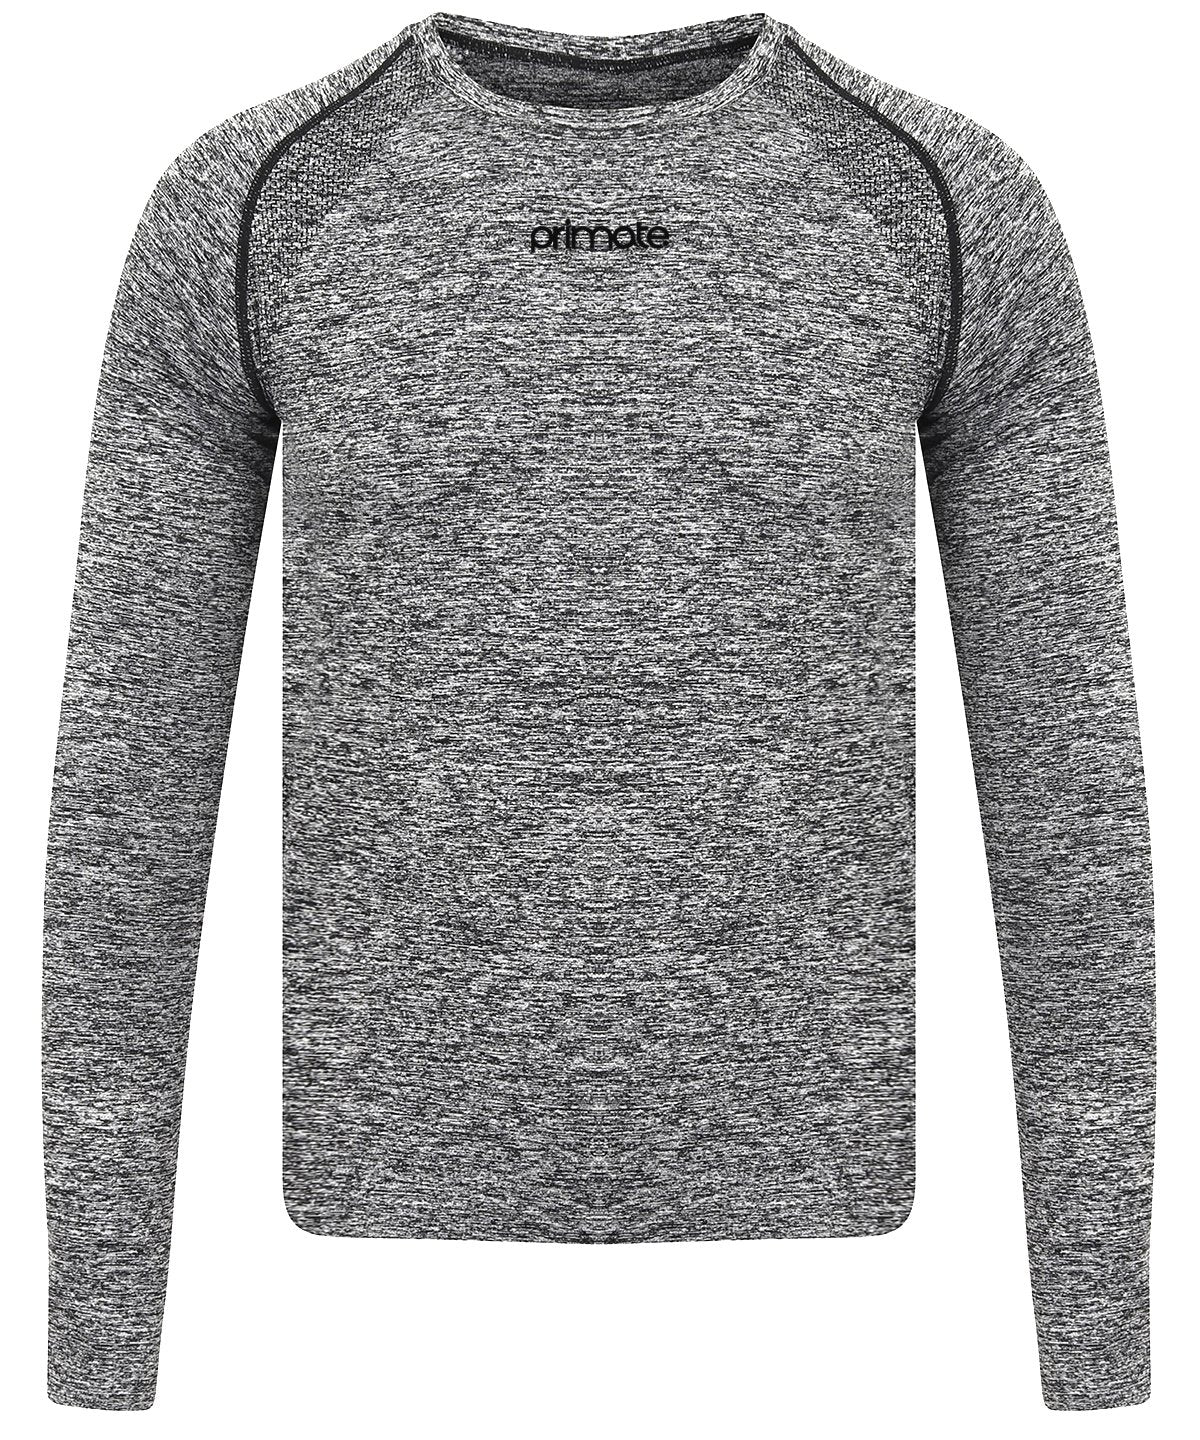 Grey Seamless Long Sleeved Baselayer Primate Activewear